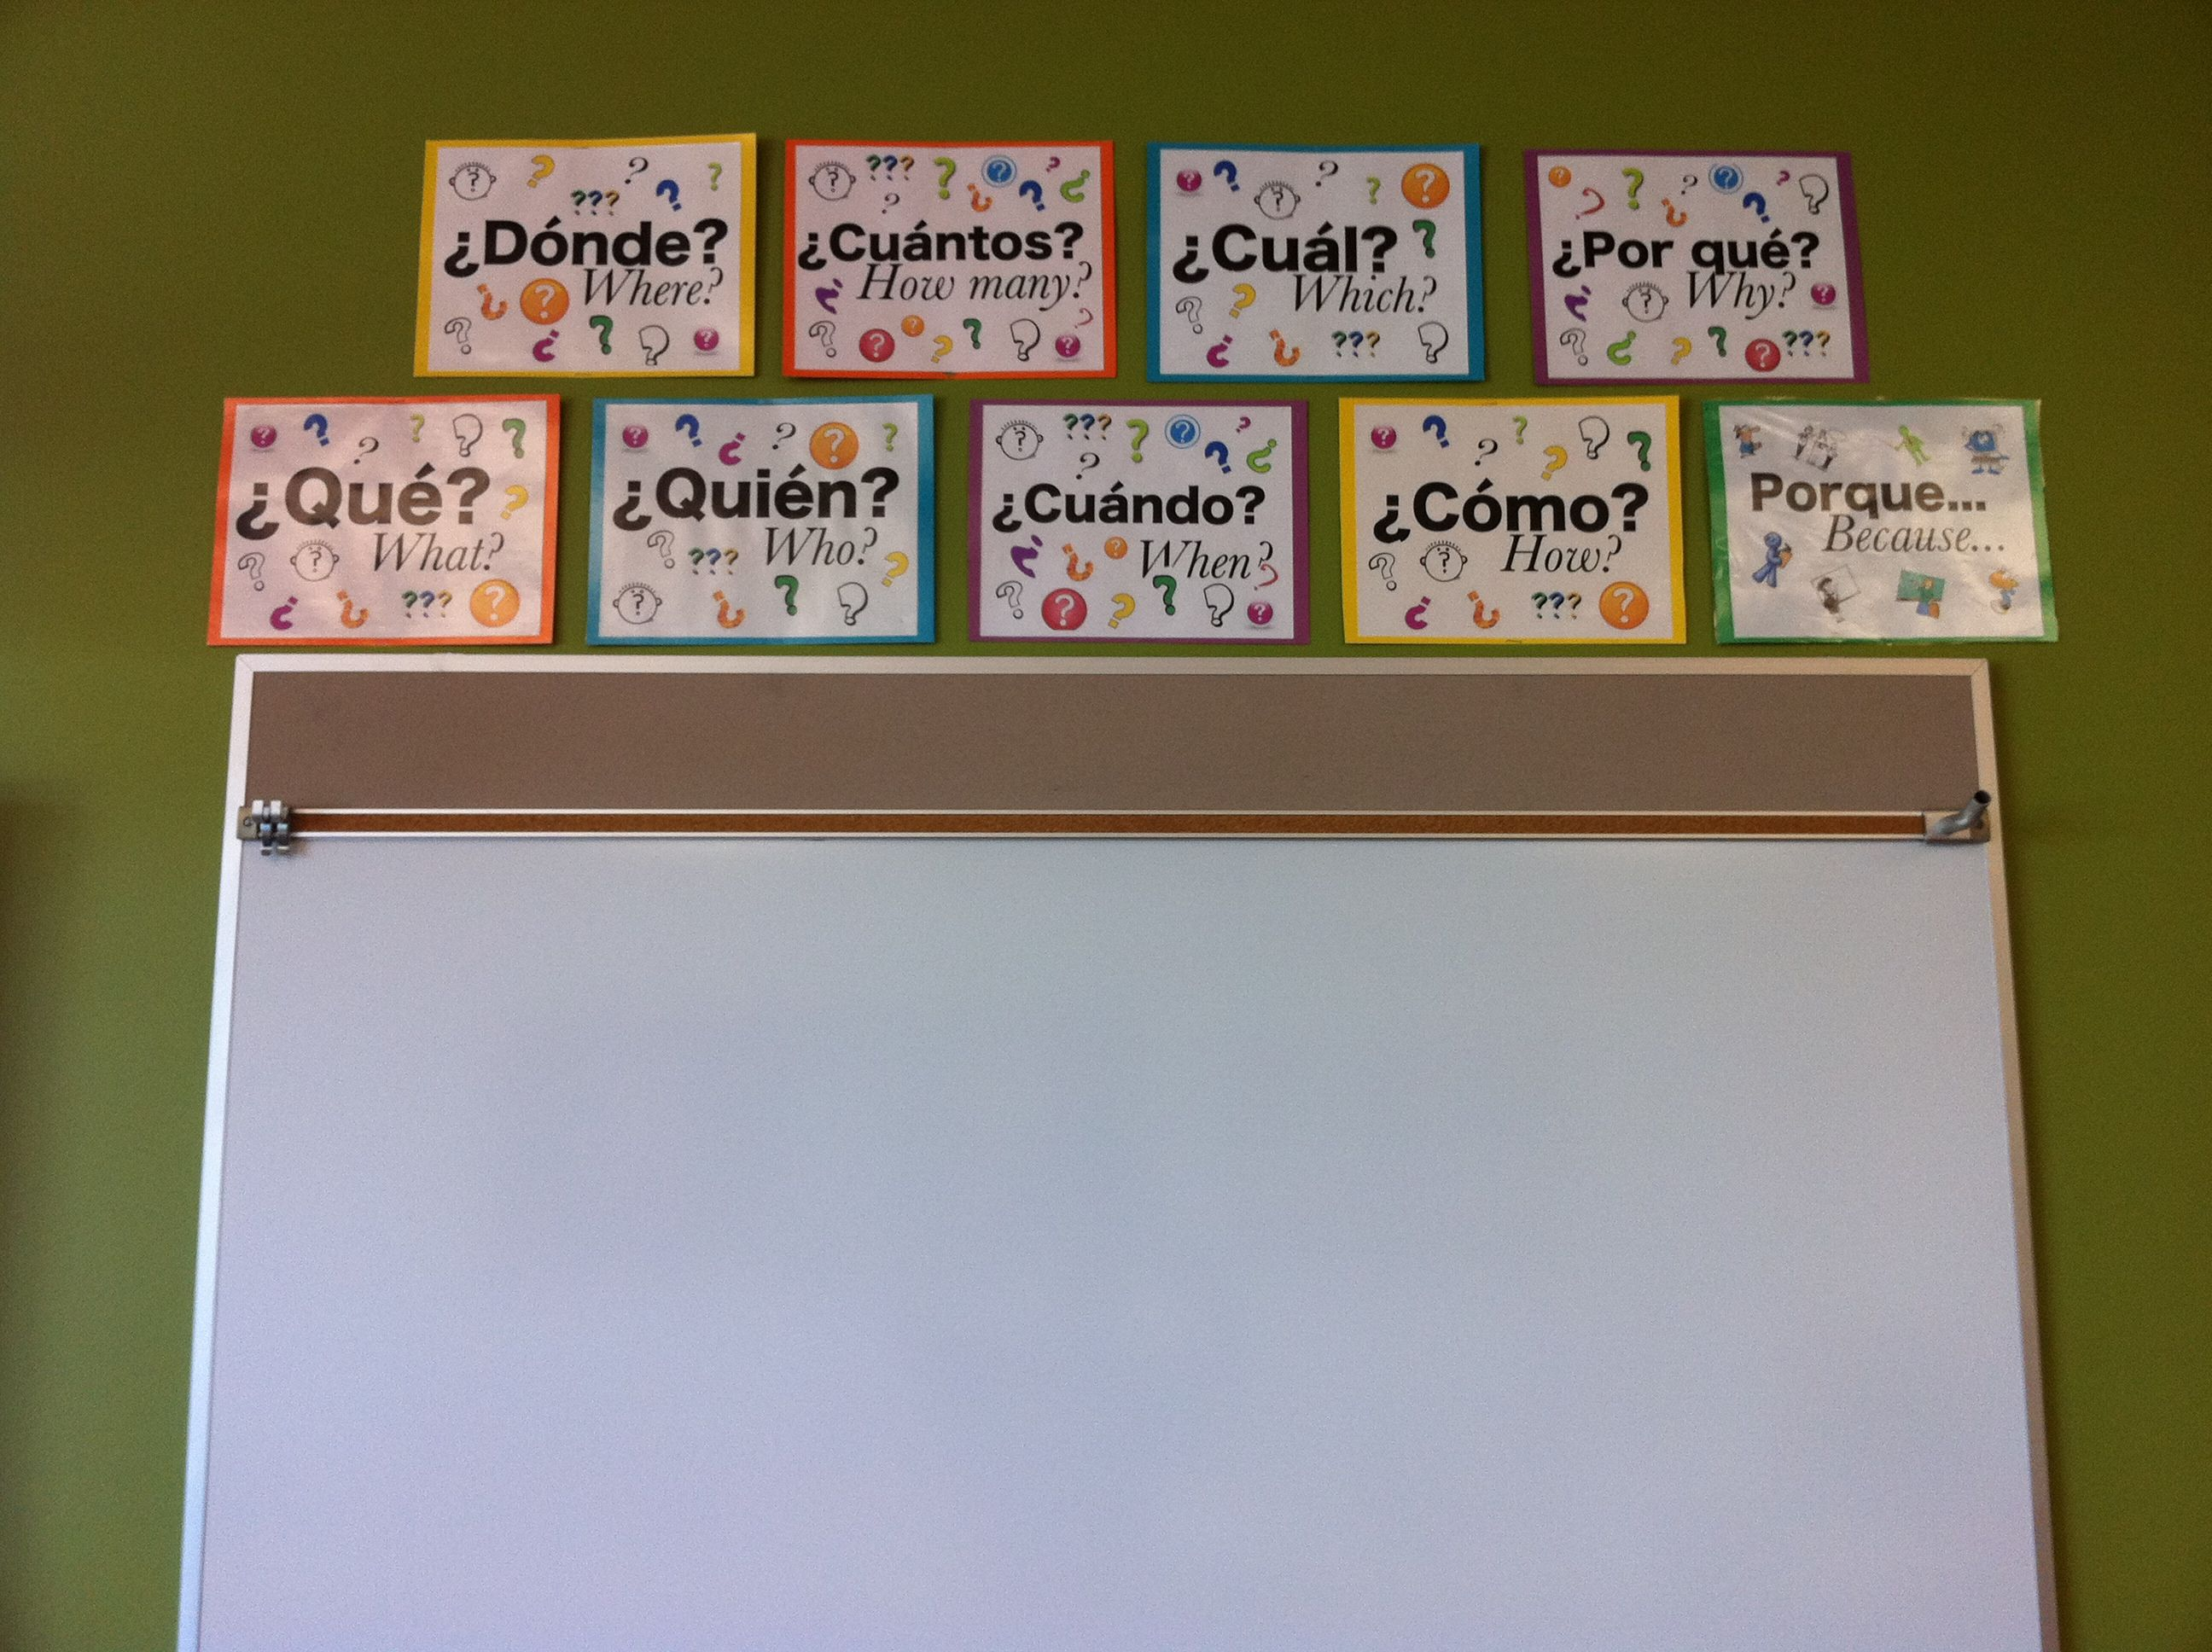 Foreign Language Classroom Decorations ~ Posters the comprehensible classroom